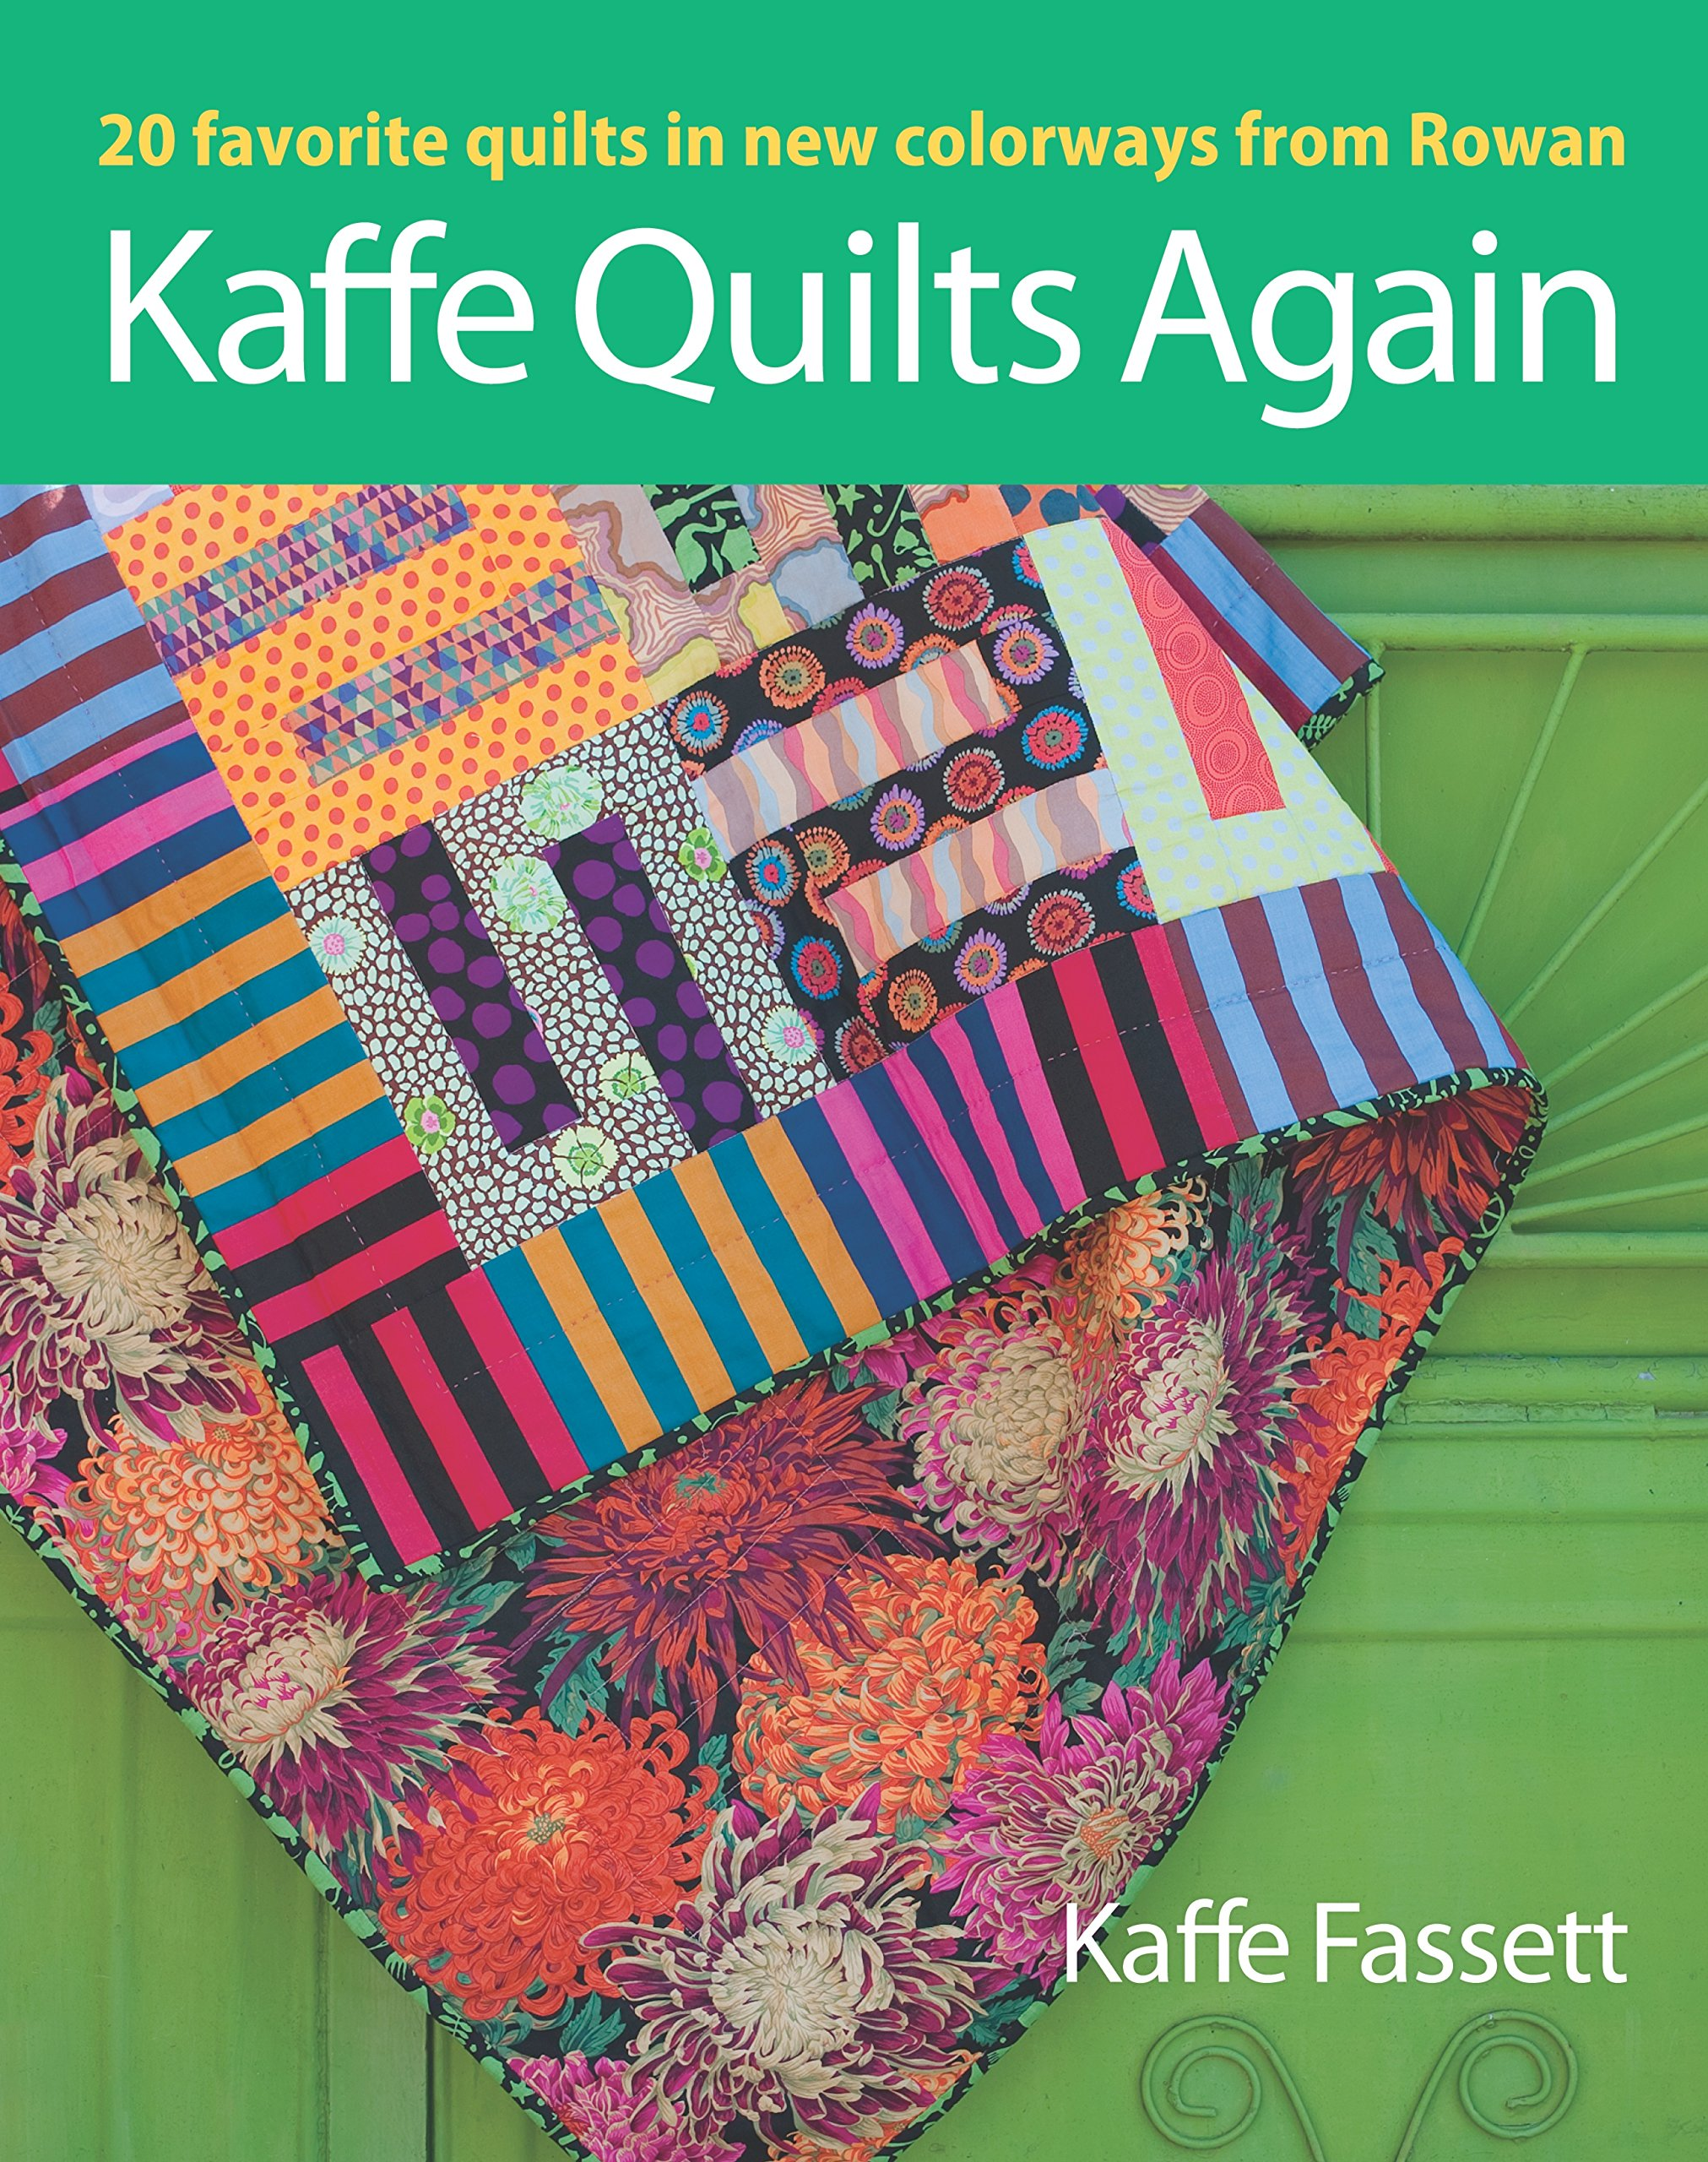 Kaffe Quilts Again: 20 Favorite Quilts in New Colorways from Rowan by Taunton Press